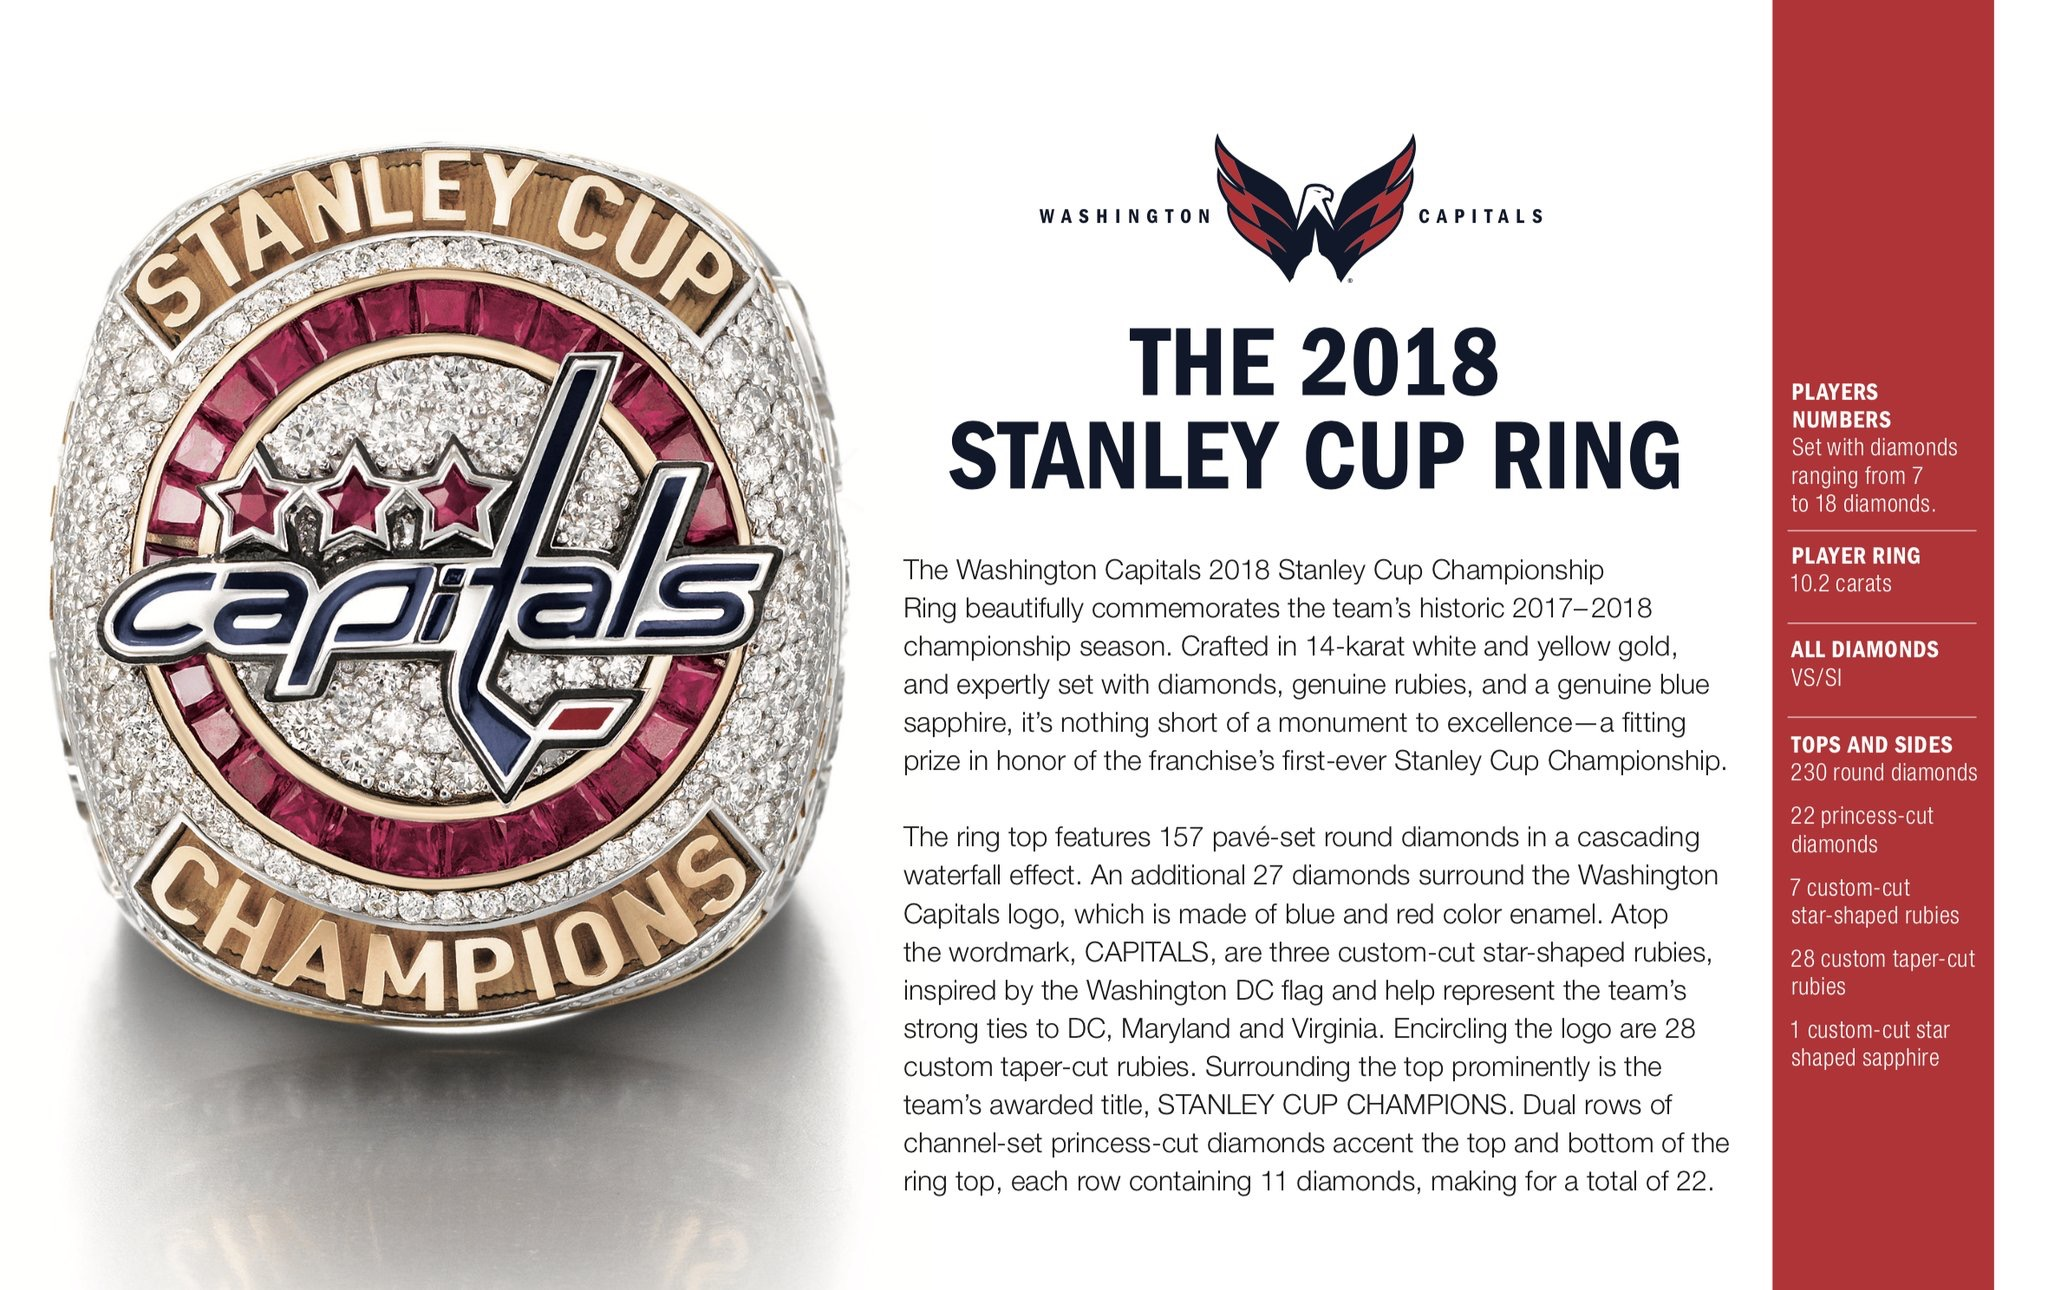 eff66729 Washington Capitals Hold Their Stanley Cup Ring Ceremony | NoVa Caps